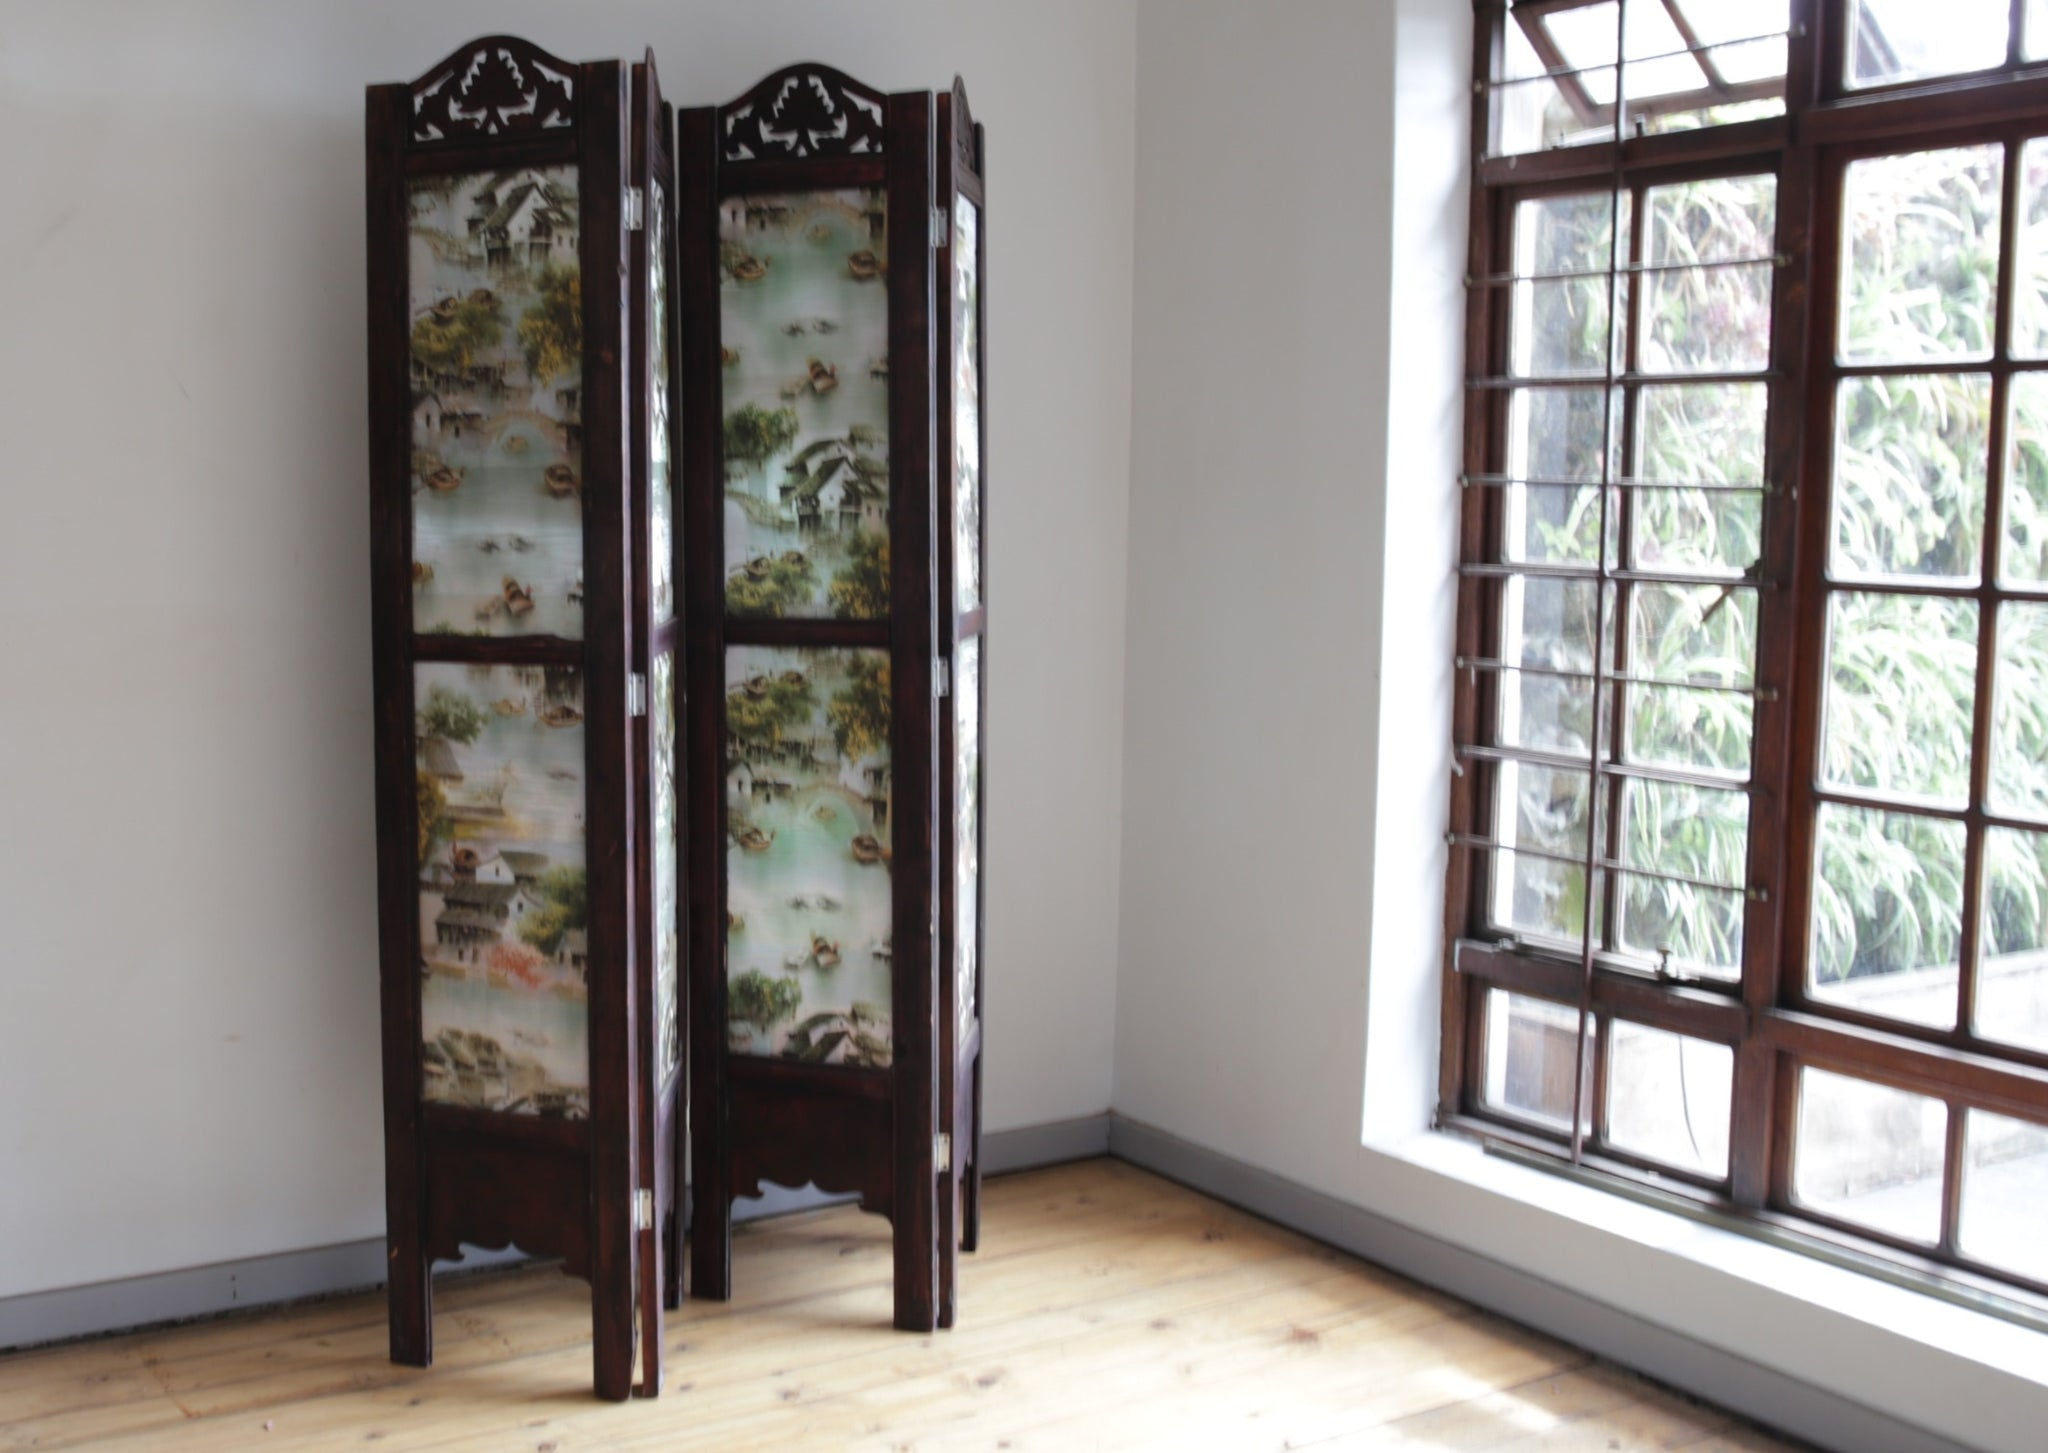 Chinese Sille Folding Screen with hand carved wooden details.